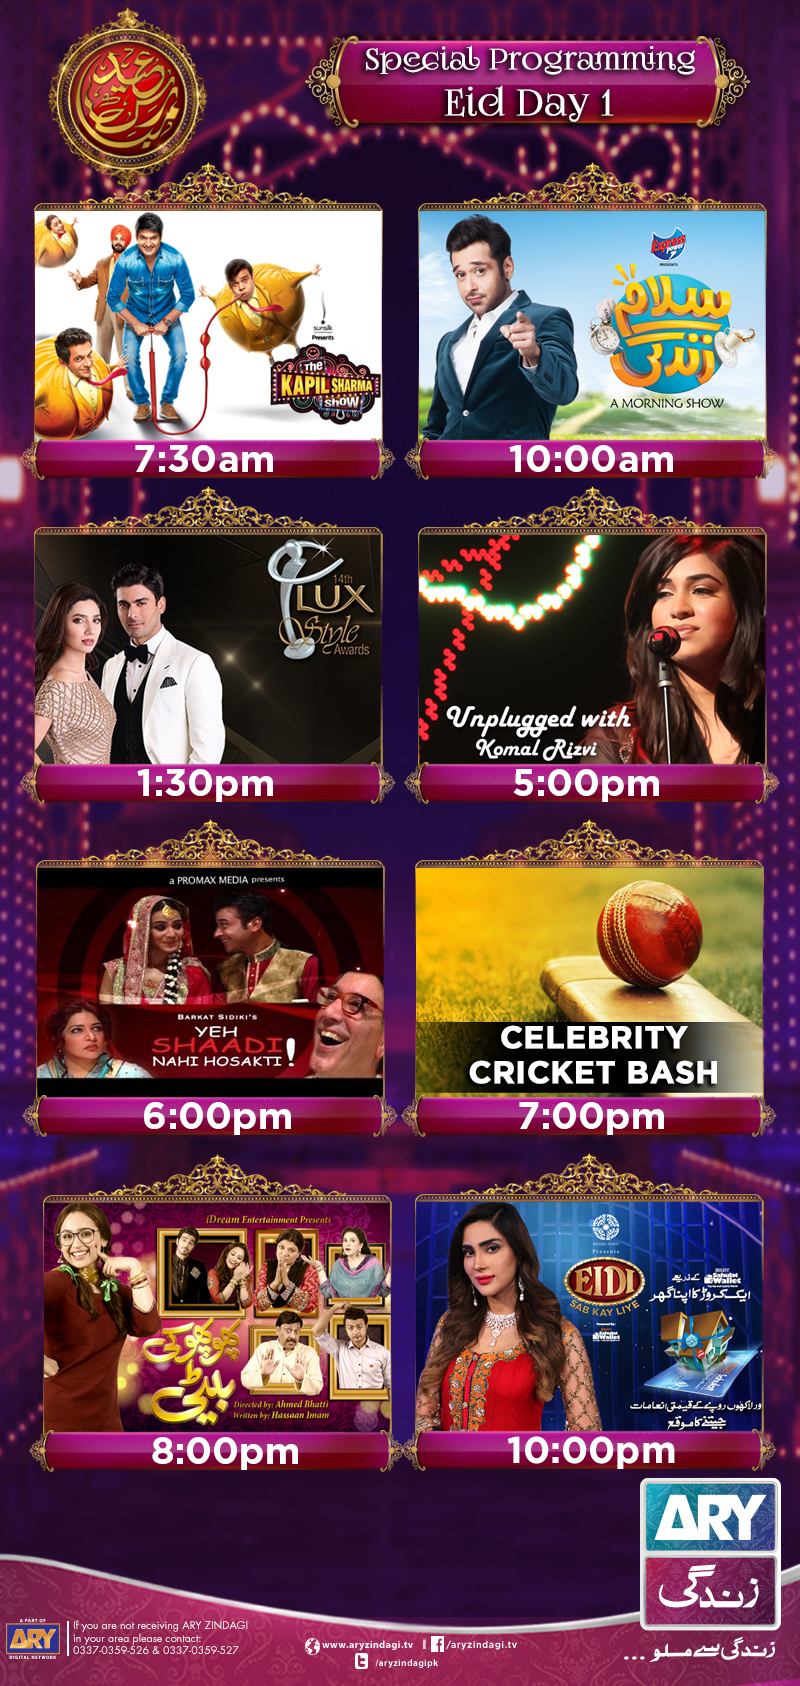 [Press Release] ARY Digital and ARY Zindagi brings exciting programs for Eid 2016 (7)